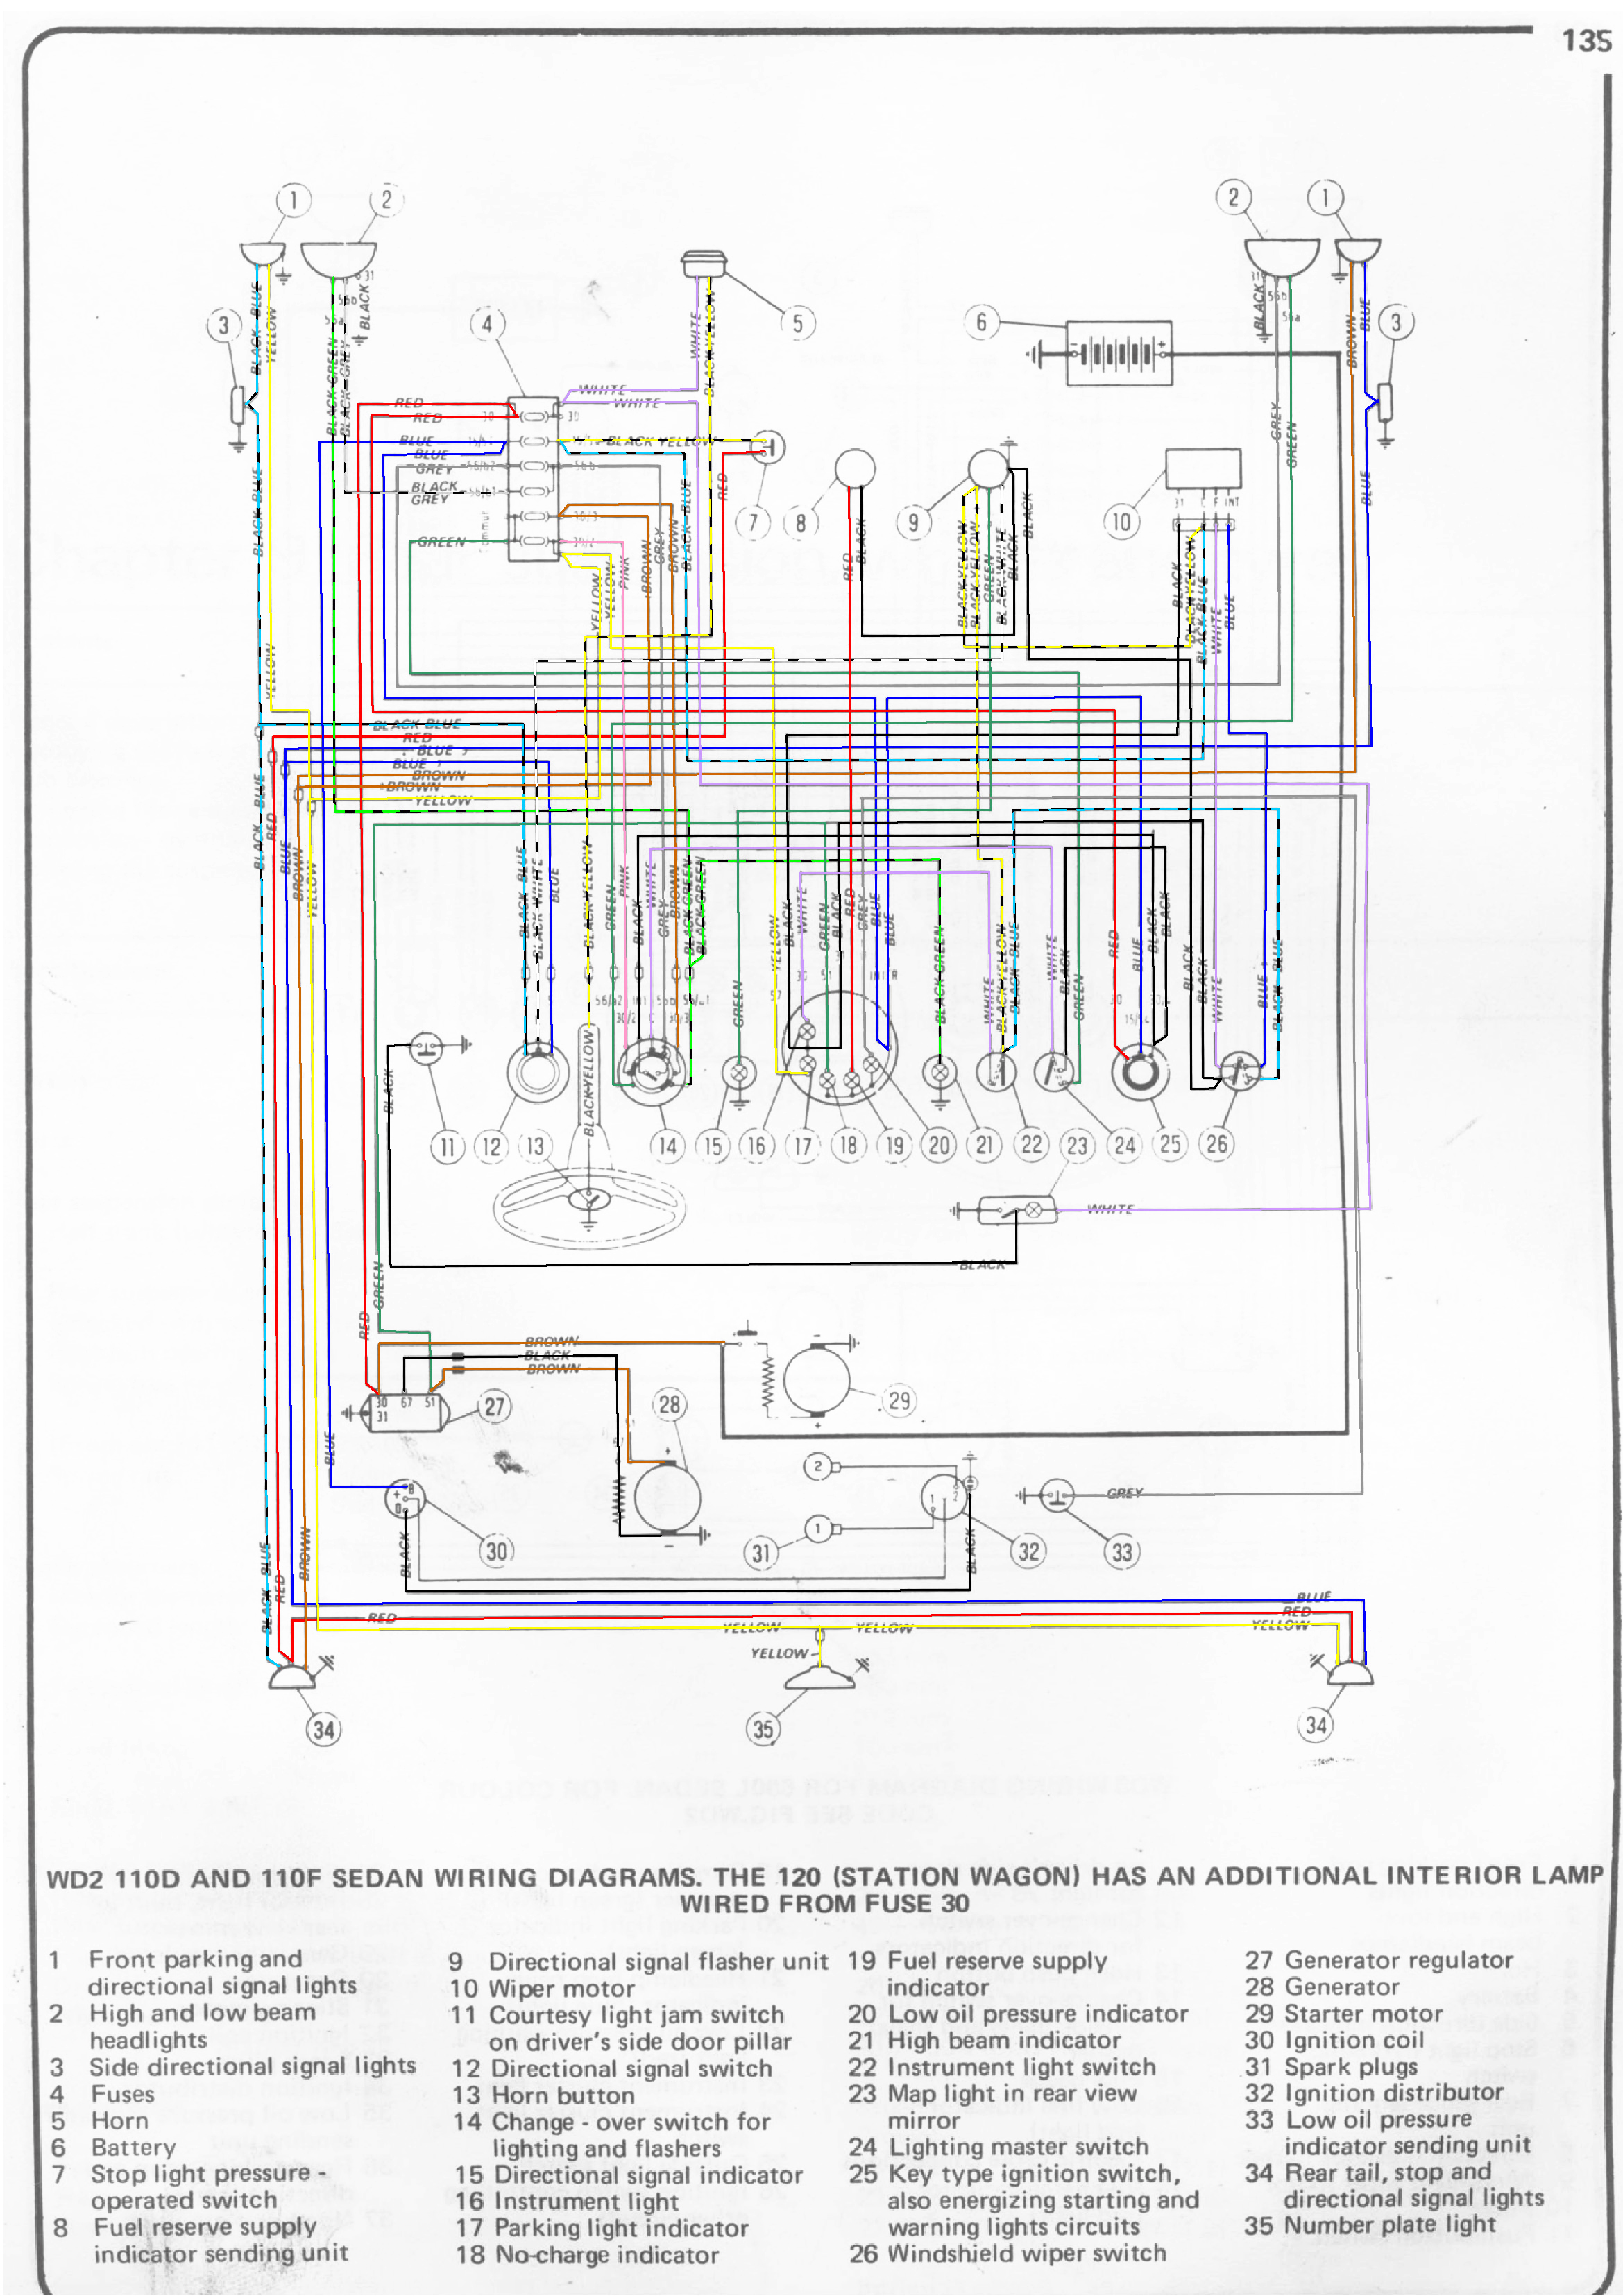 Fiat Wiring Harness - Wiring Diagram Verified on